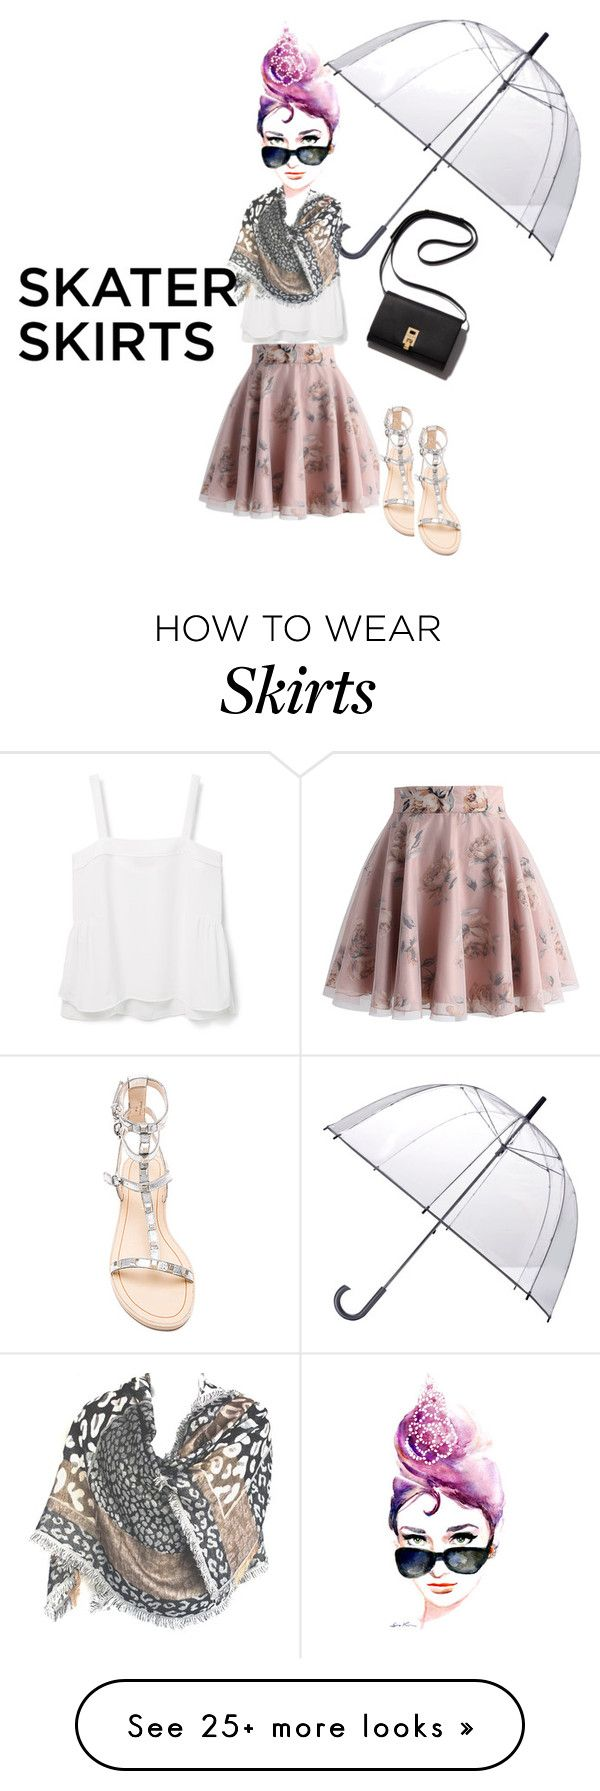 """""""Skater Skirt!"""" by stormi3 on Polyvore featuring Chicwish, Violeta by Mango, Totes, Rebecca Minkoff and skaterSkirts"""